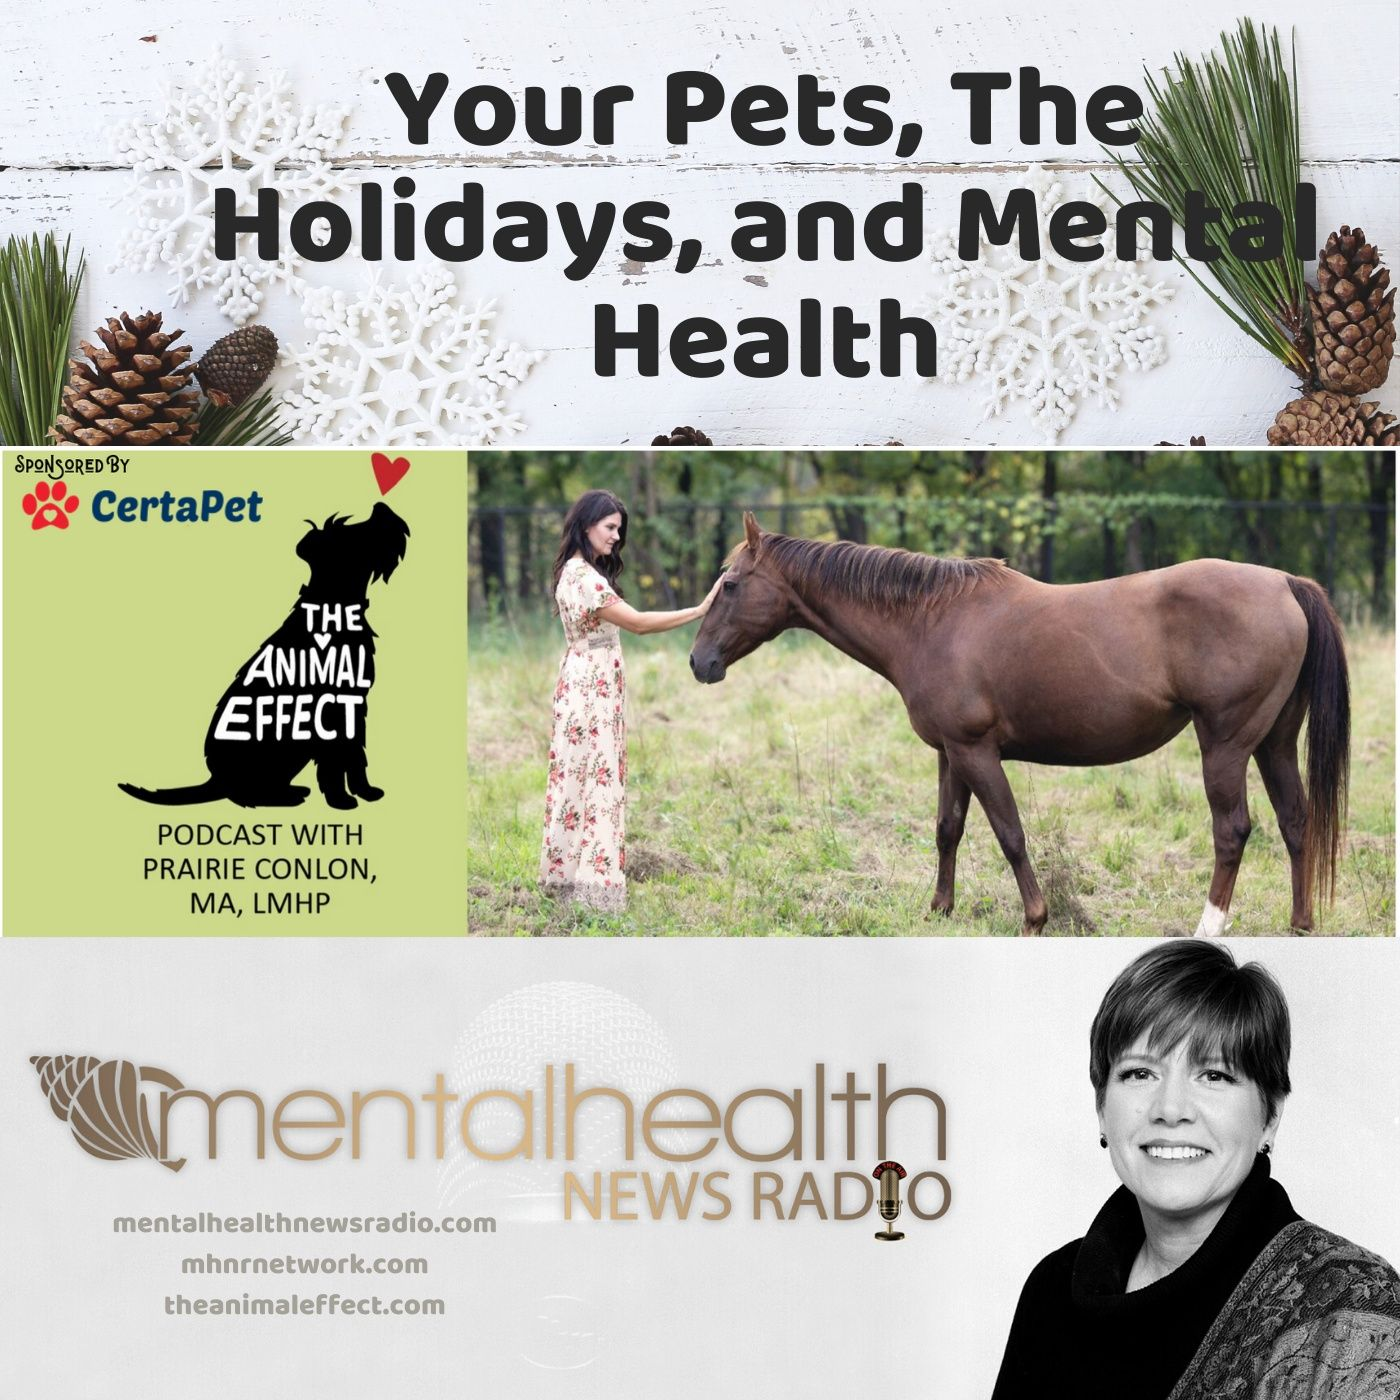 Mental Health News Radio - Your Pets, the Holidays, and Mental Health